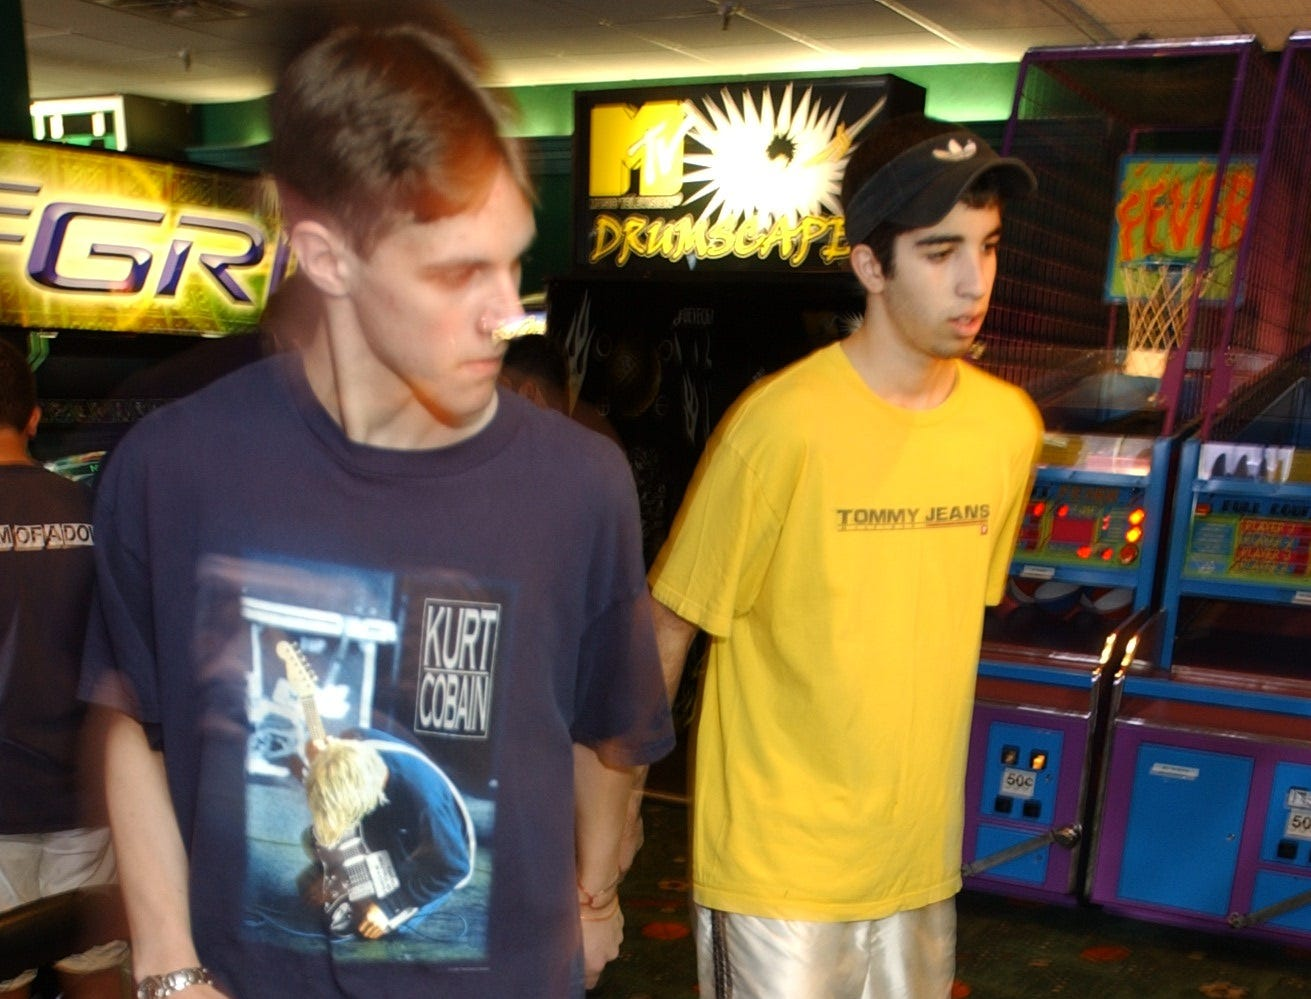 Dance, Dance Revolution video game at Fun N Games arcade at Willowbrook Mall being played by (L) Justin Dougherty of Little Falls and (R) Joe DeFabrizio of Totowa. Taken on July 15, 2002.